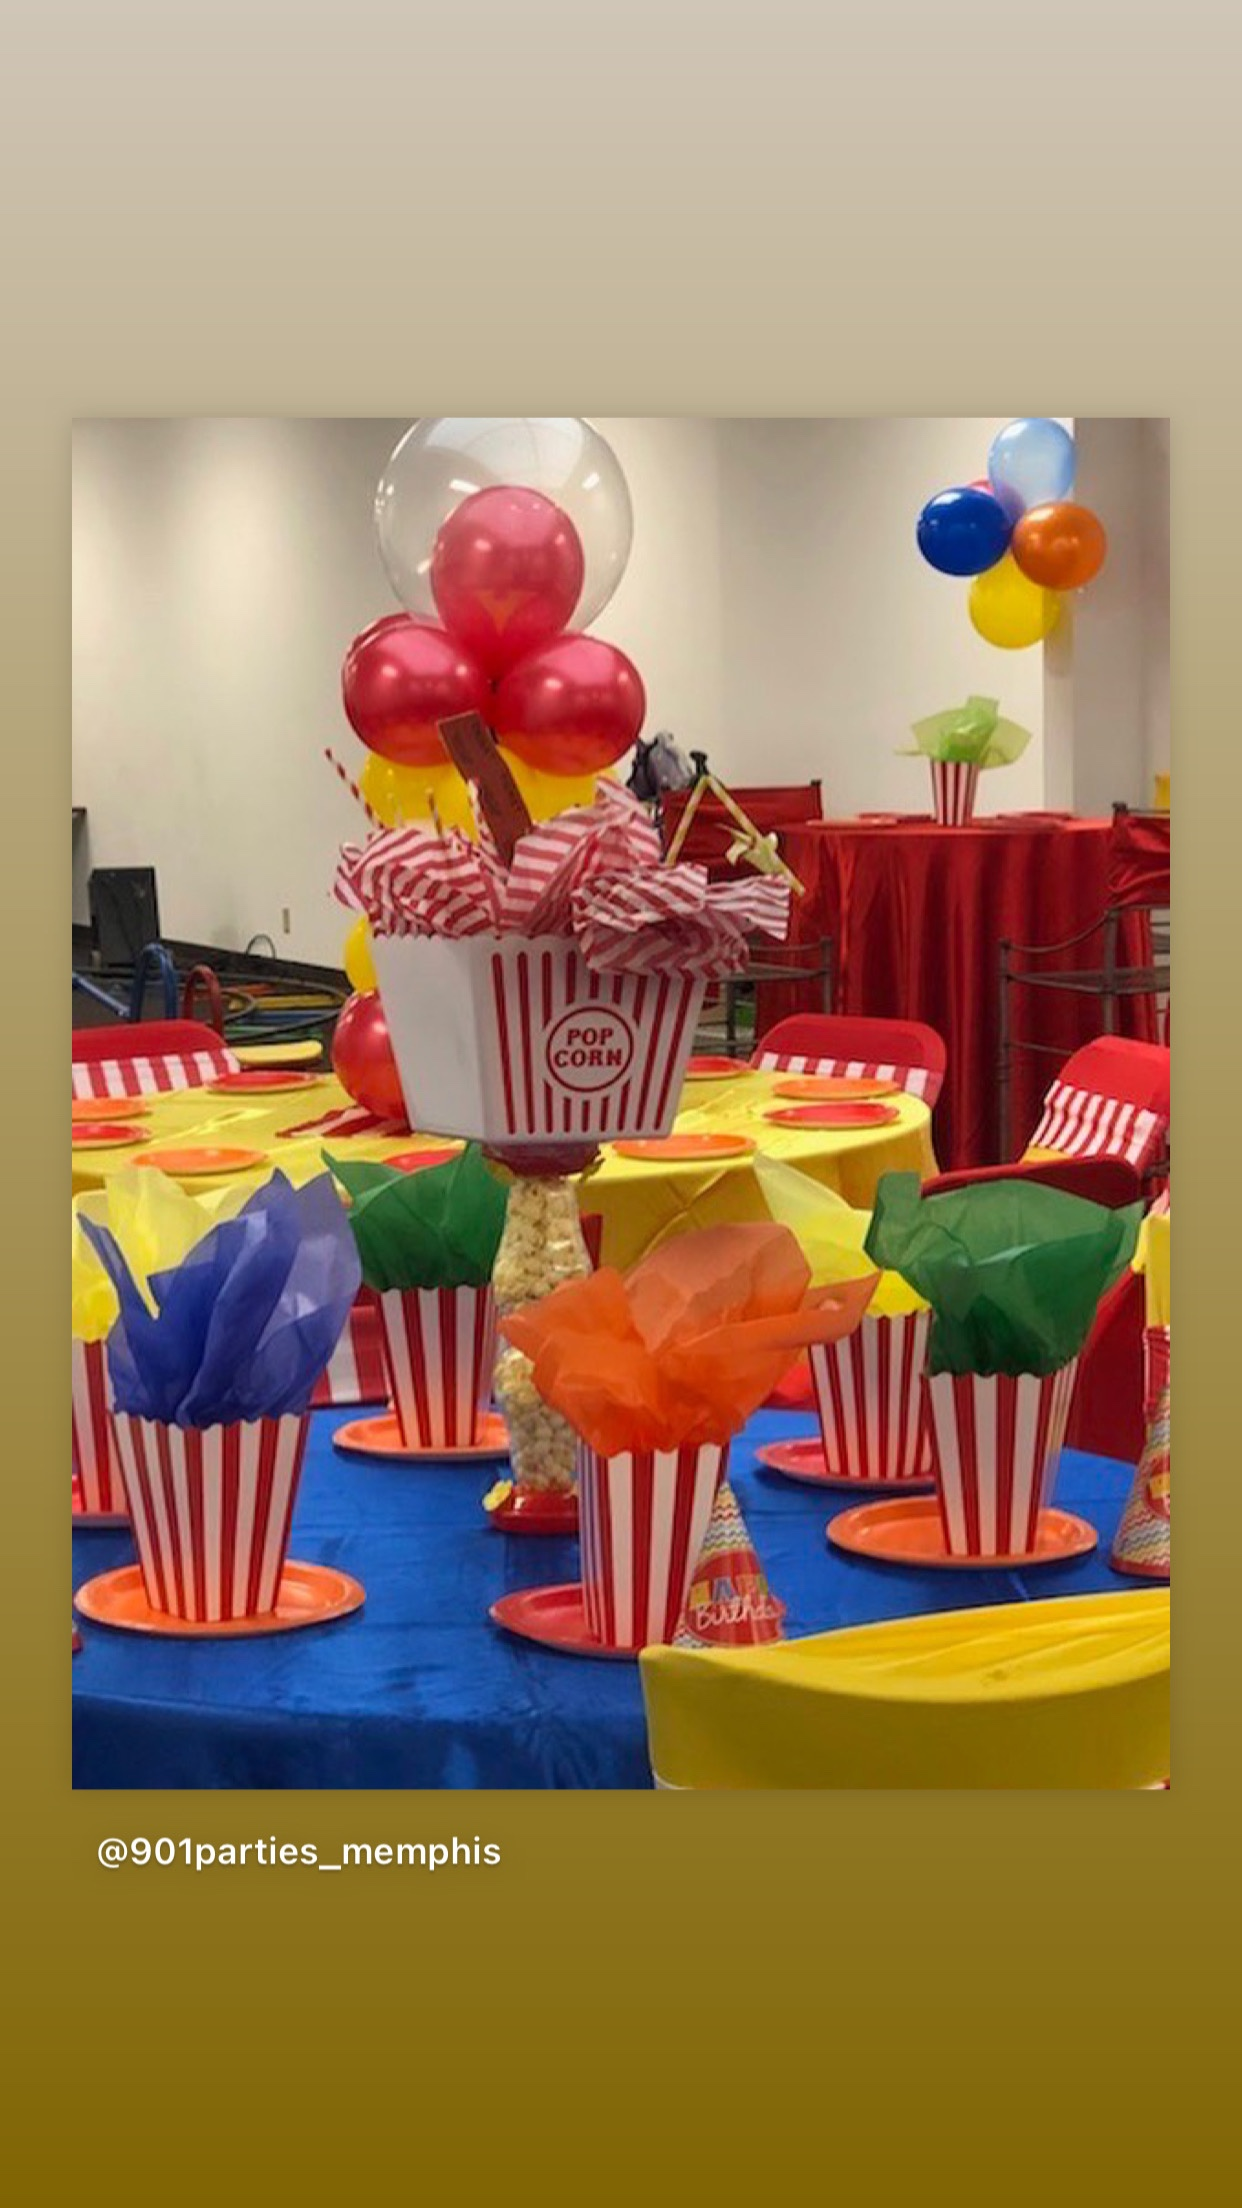 $2,000 GETS YOU THE BEST CARNIVAL BIRTHDAY PARTY FOR KID'S IN MEMPHIS!